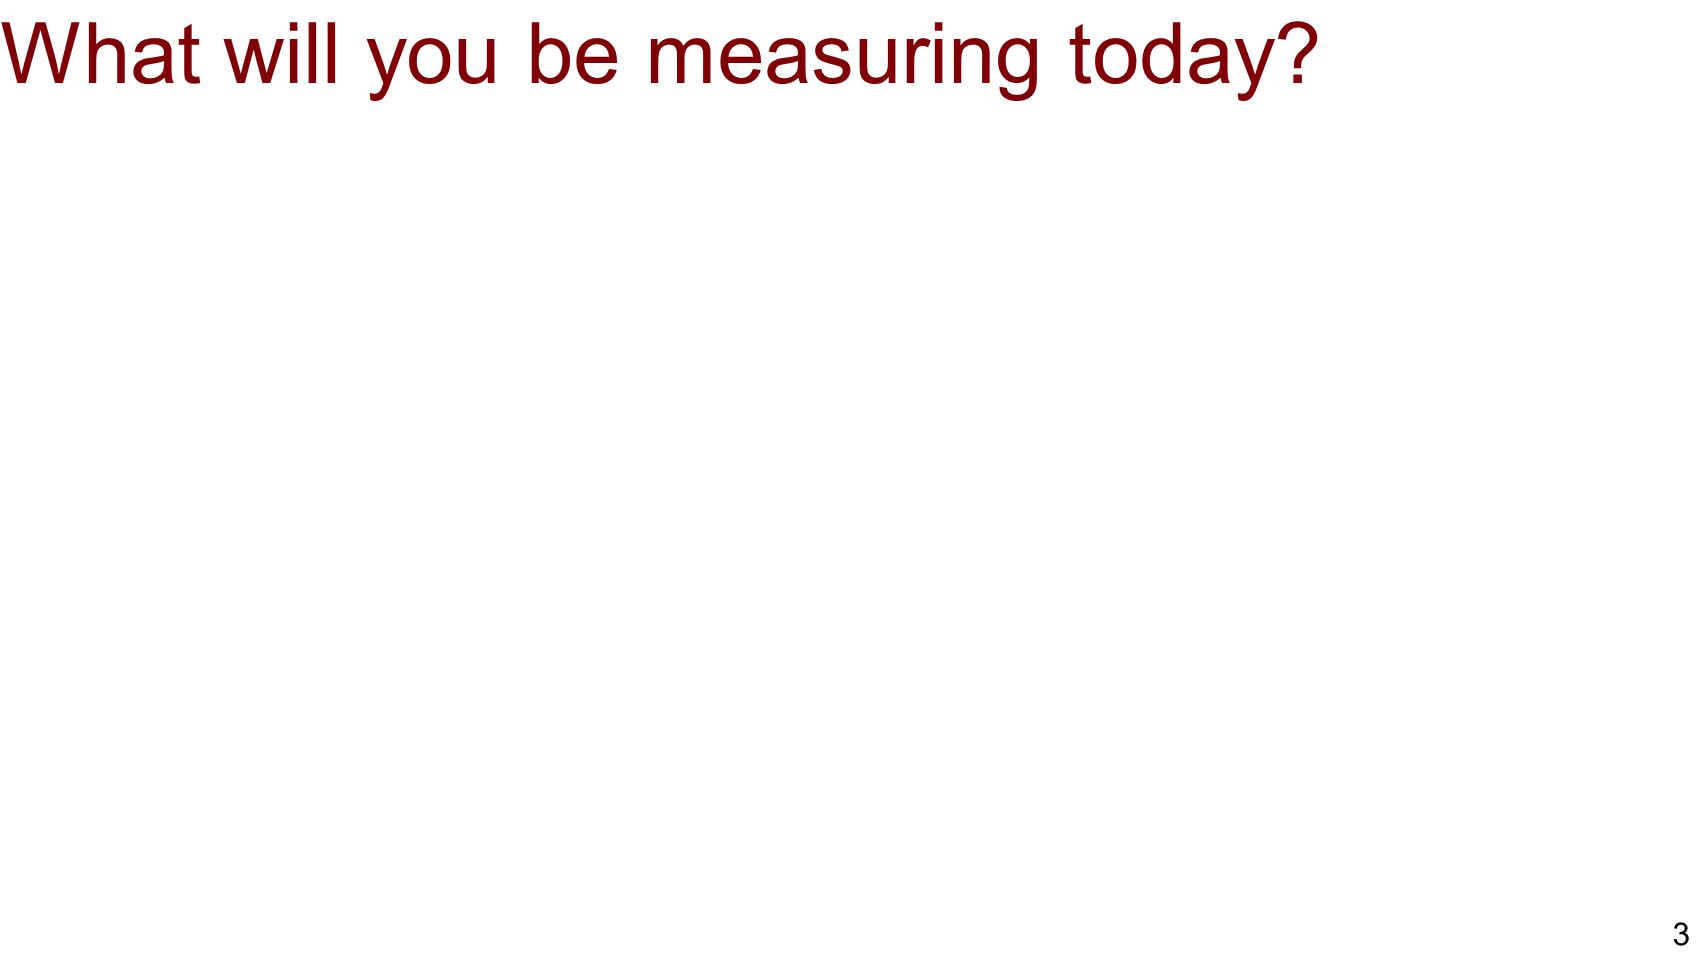 4 The object of this exercise is for you to measure the lifetime of a certain kind of particle found in nature